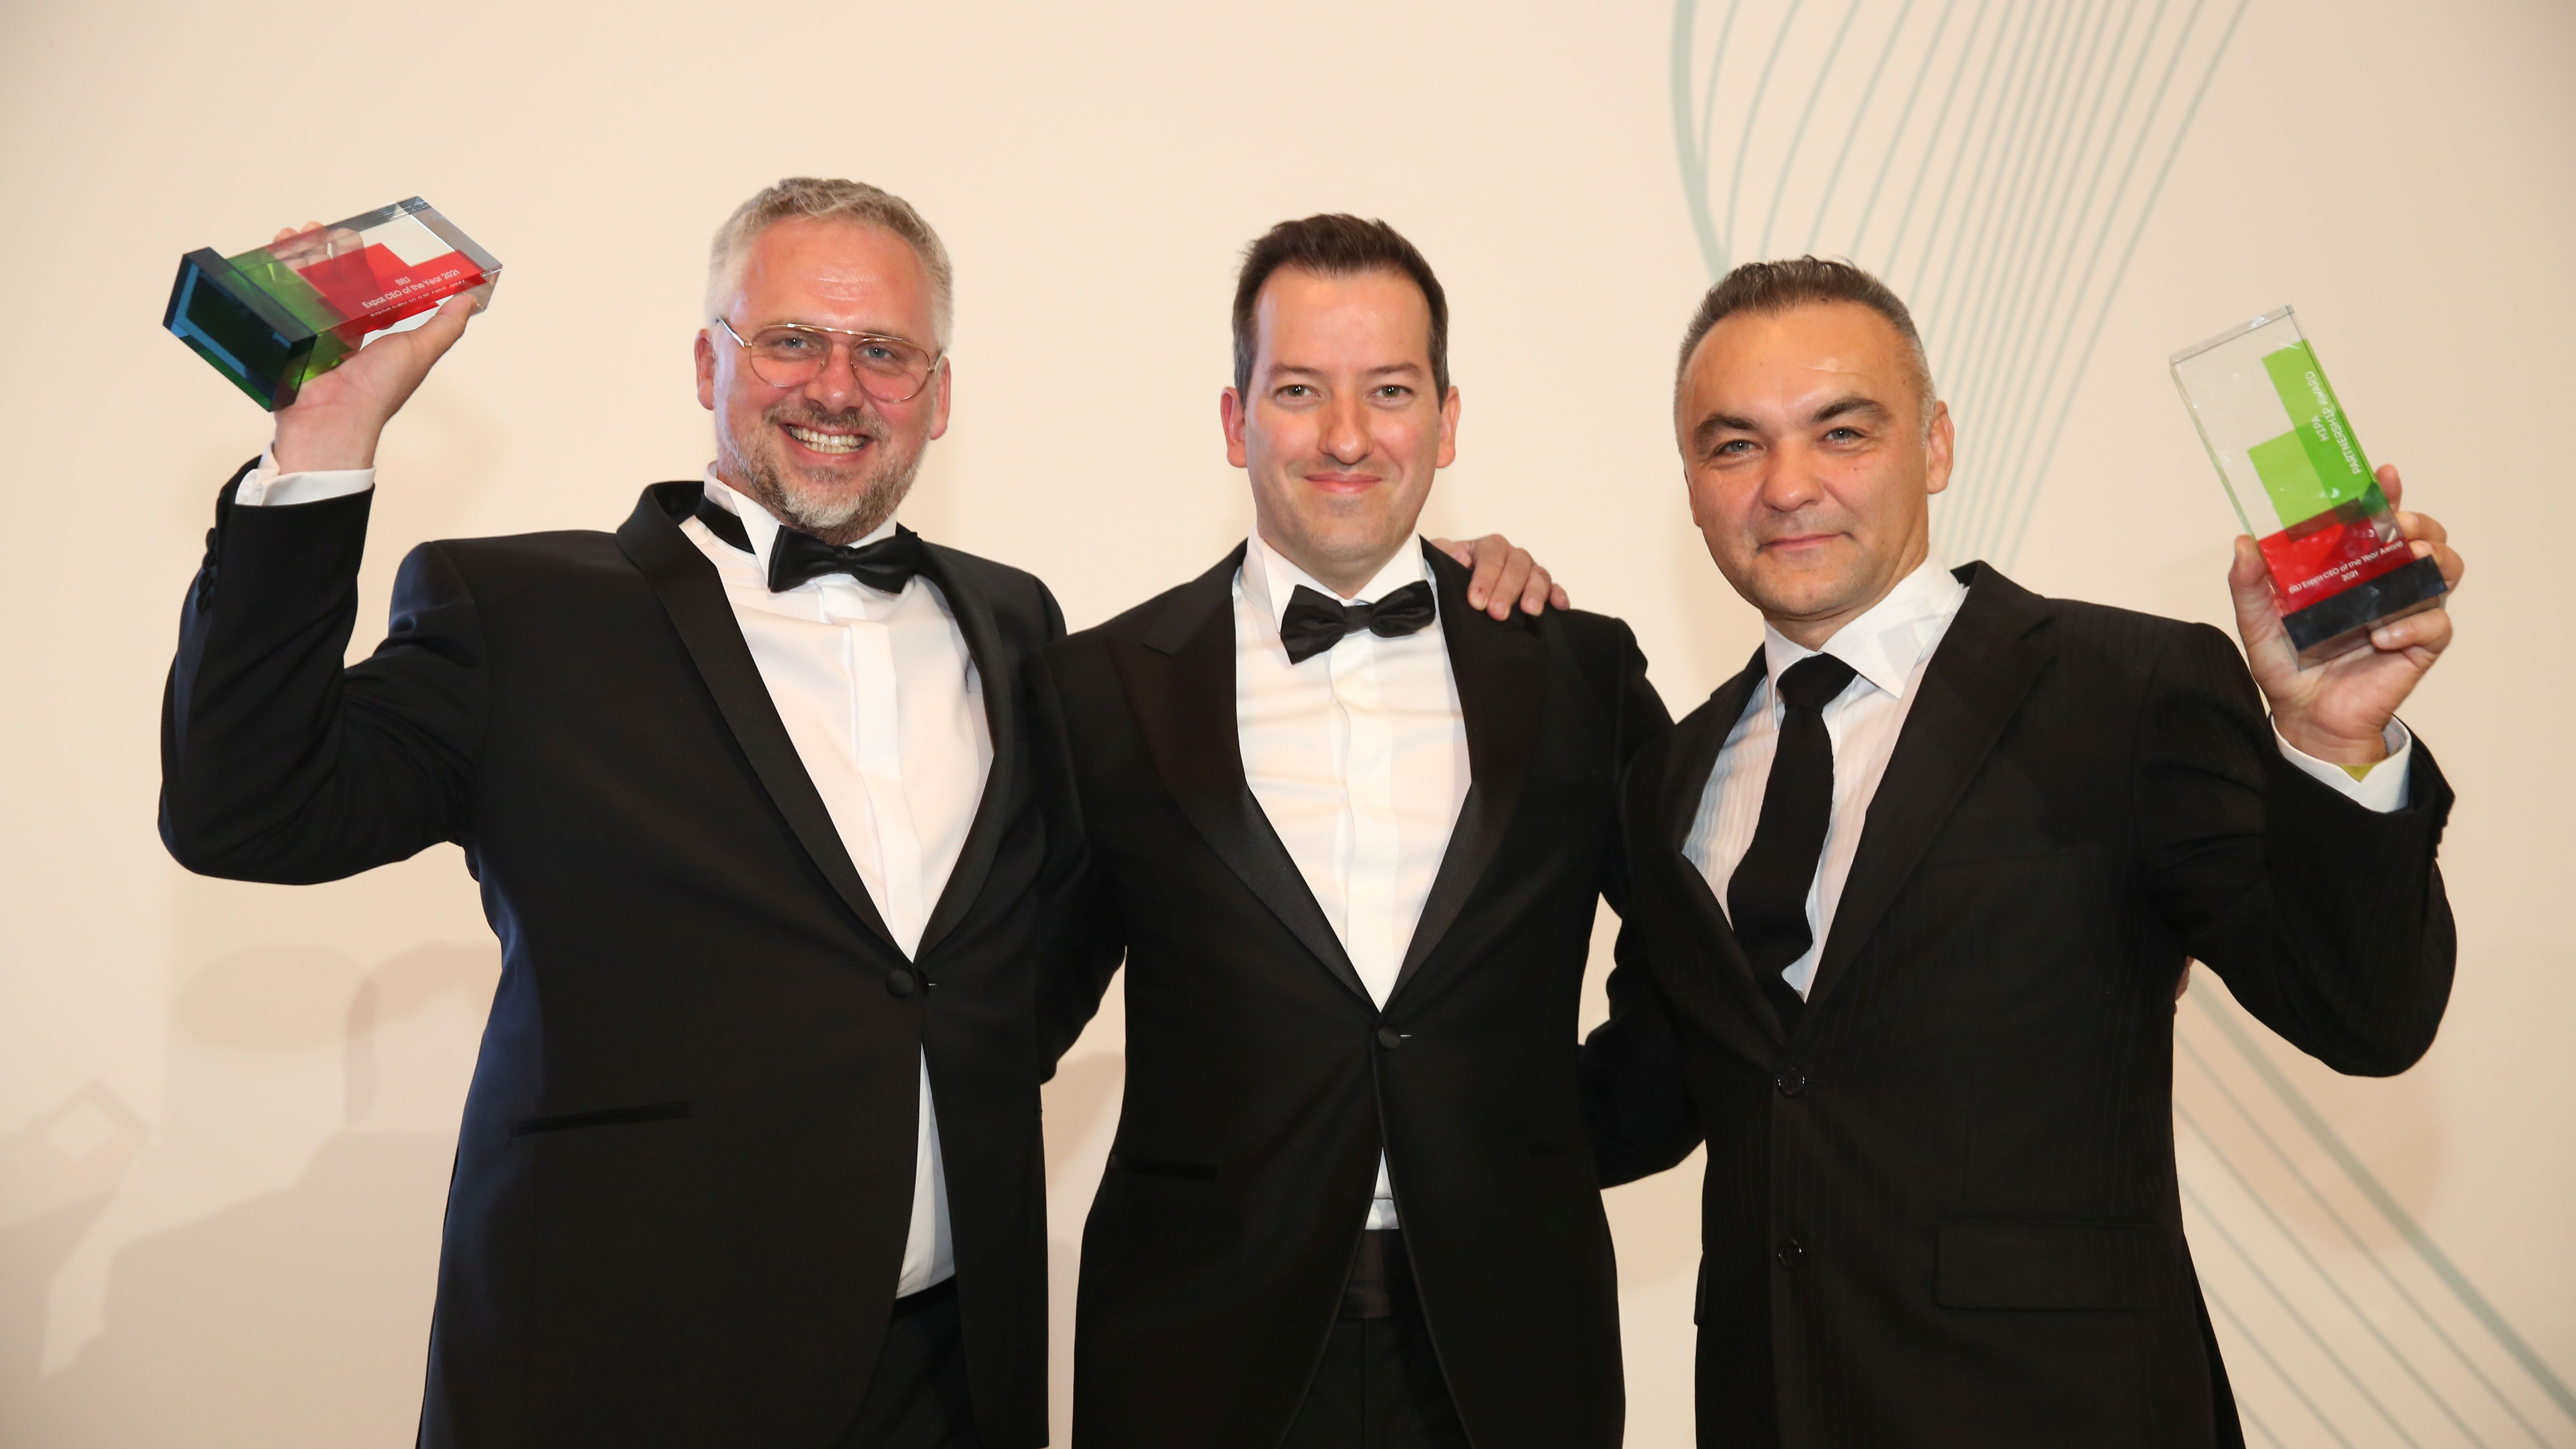 HIPA and Budapest Business Journal once again awarded the best foreign CEOs 2021